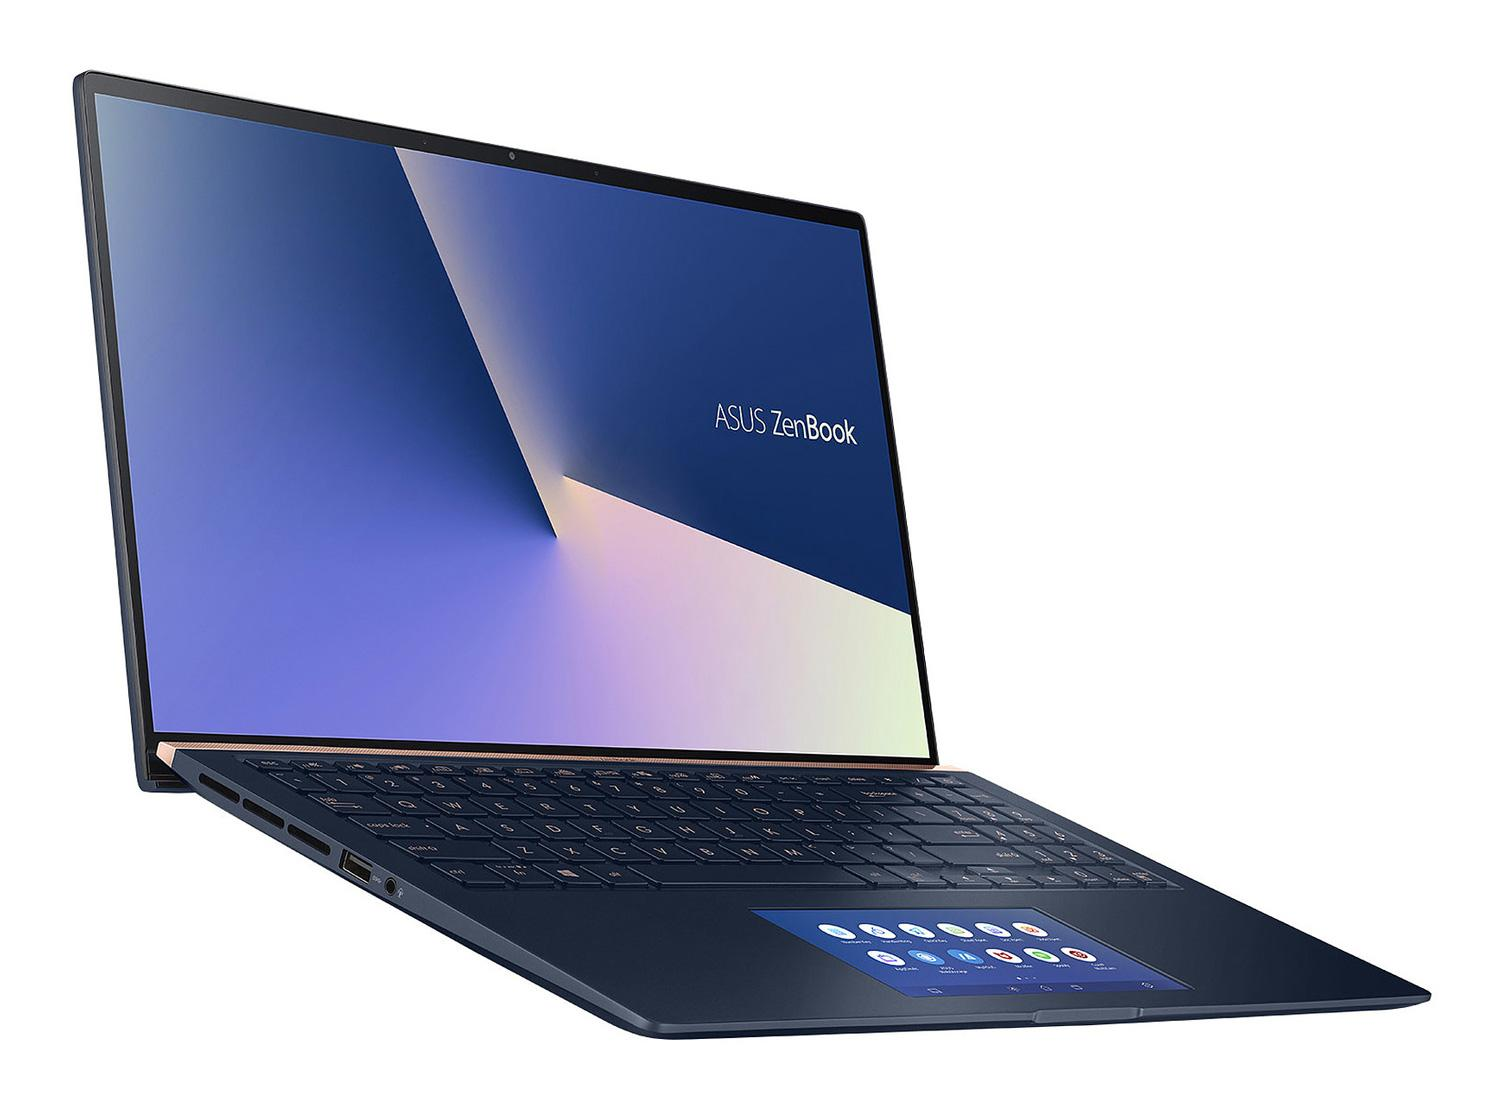 Ordinateur portable Asus ZenBook UX534FT-AA025R Bleu - 4K, GTX 1650 Max-Q, SSD 1 To, ScreenPad - photo 3